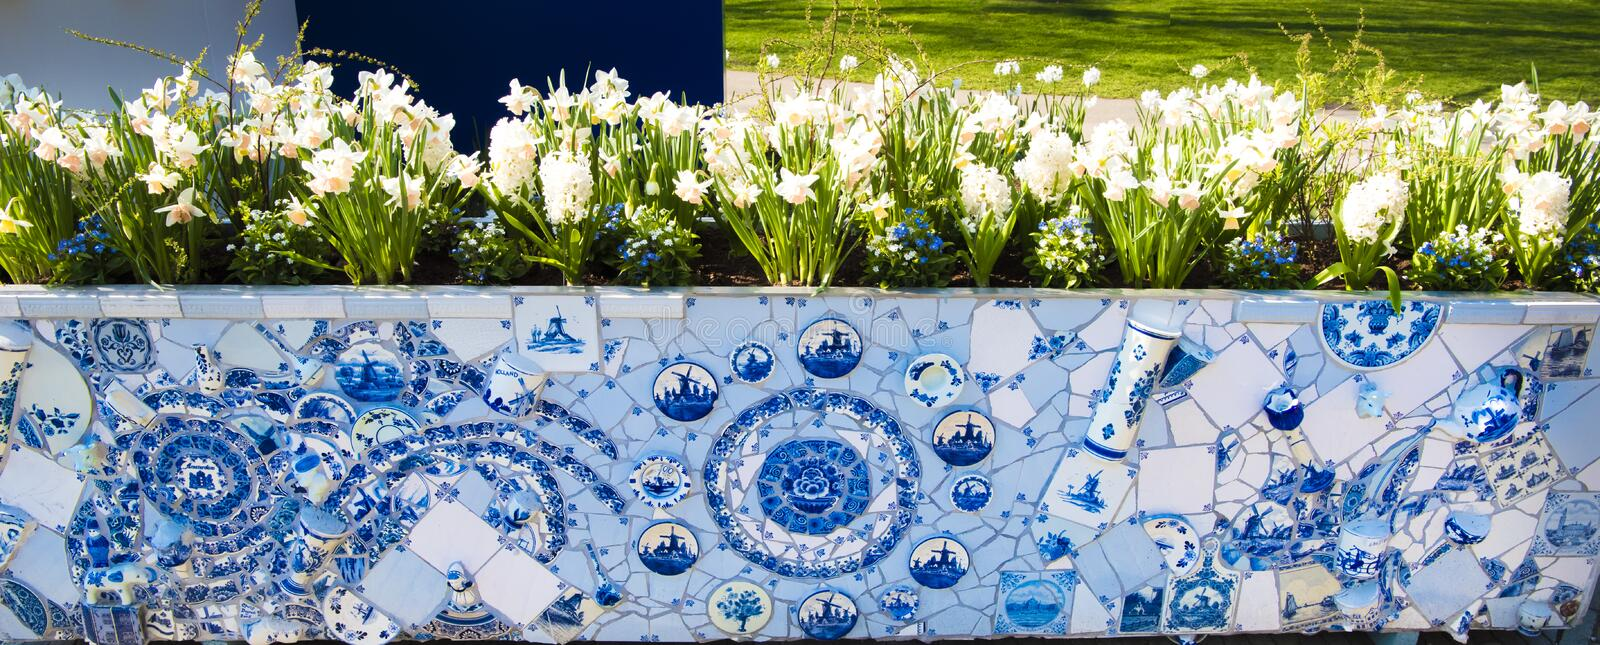 Dutch delfter porcelain tiles, vases and pots in new flower tub. Typical dutch blue and white Delft porcelain flower tub with White daffodils stock photos